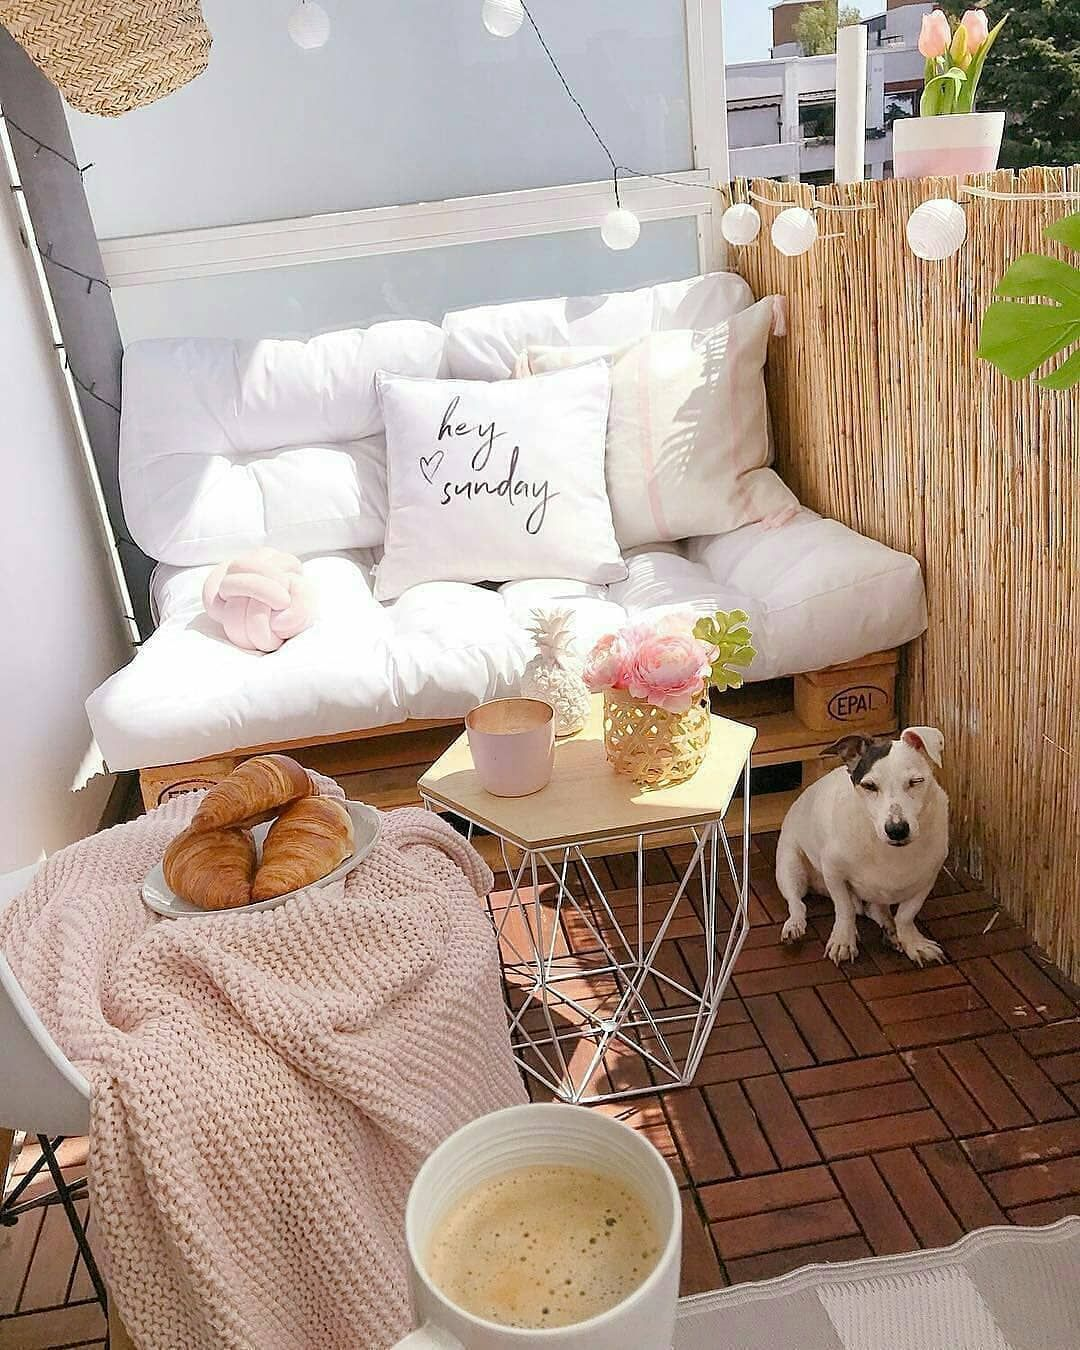 40 Cozy Balcony Ideas and Decor Inspiration 2019 - Page 17 of 41 - My Blog